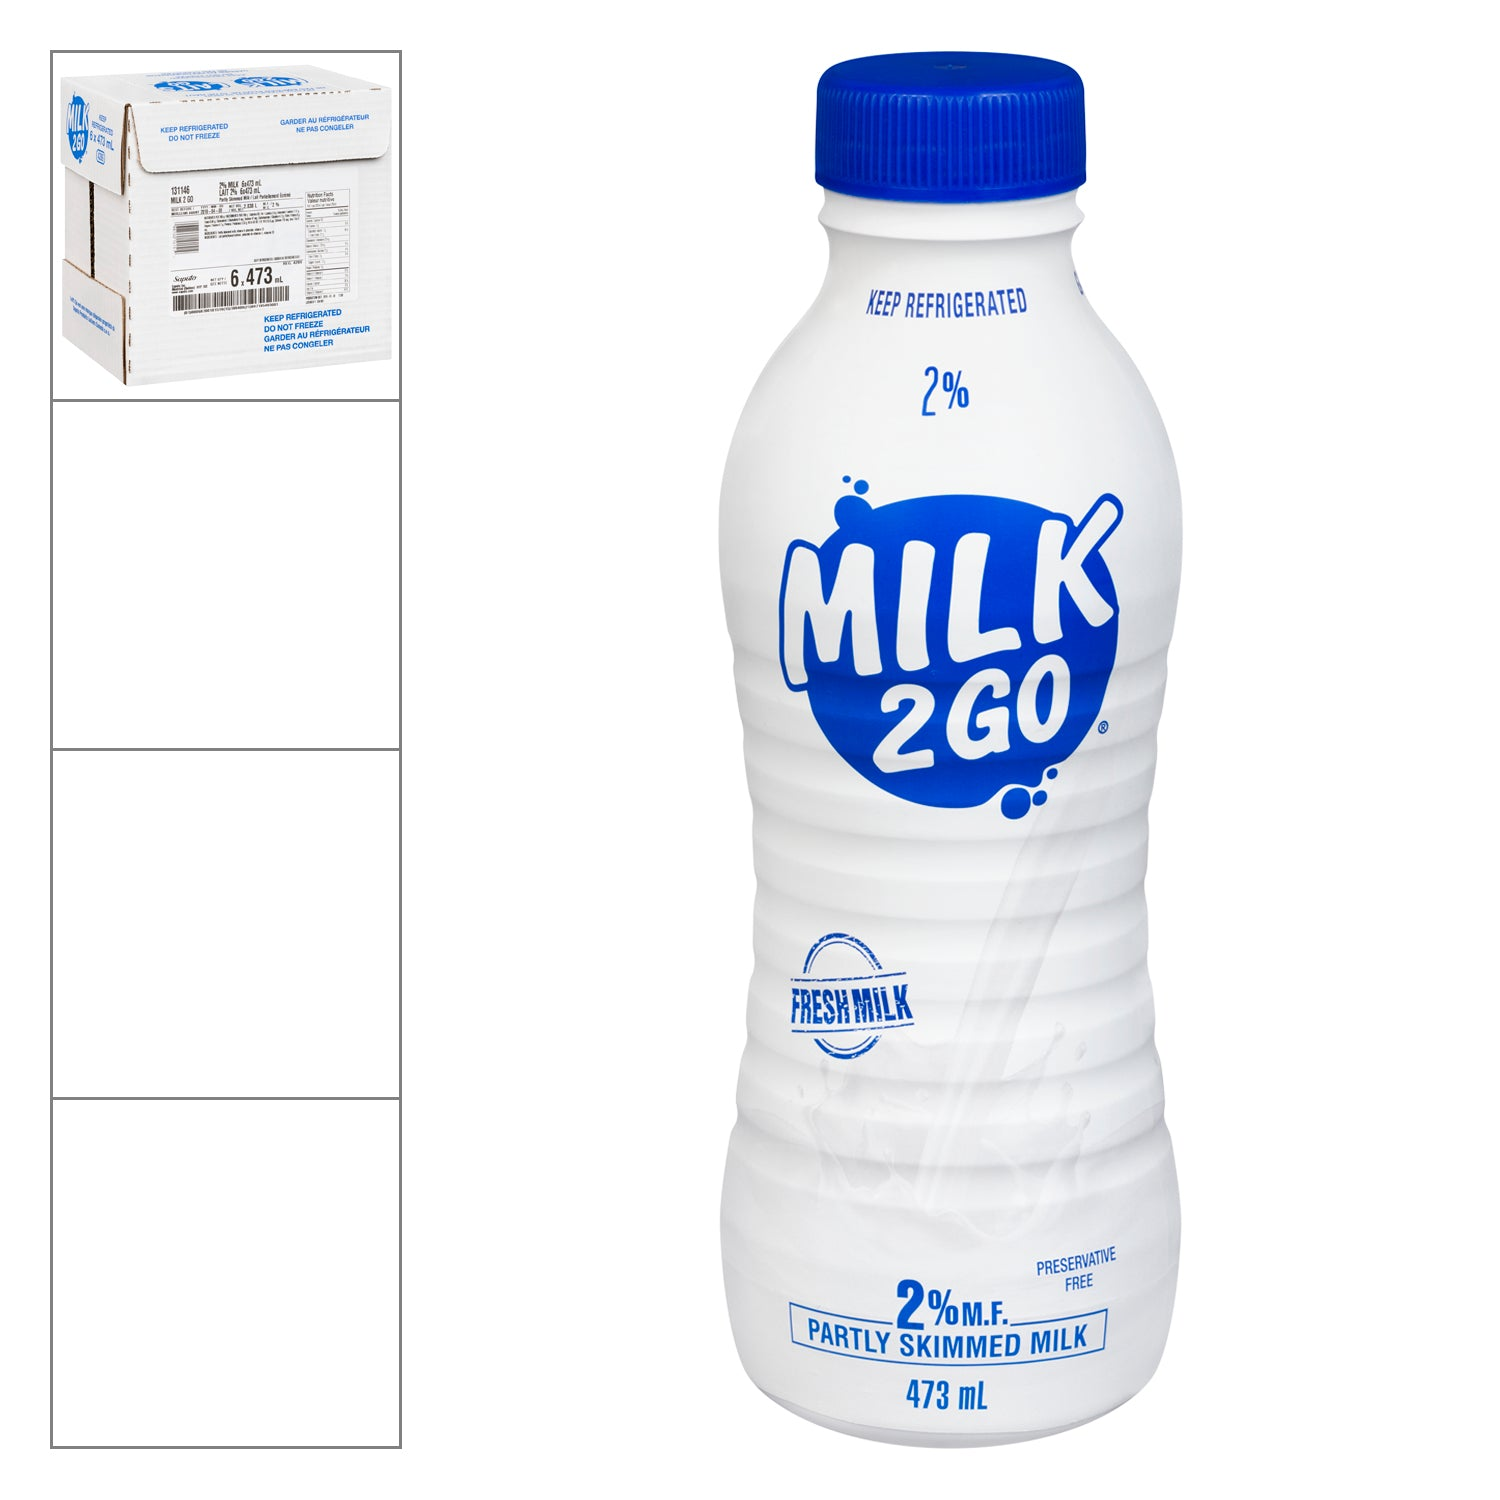 Milk2Go 2% 473 ml - 6 Pack [$2.00/bottle]